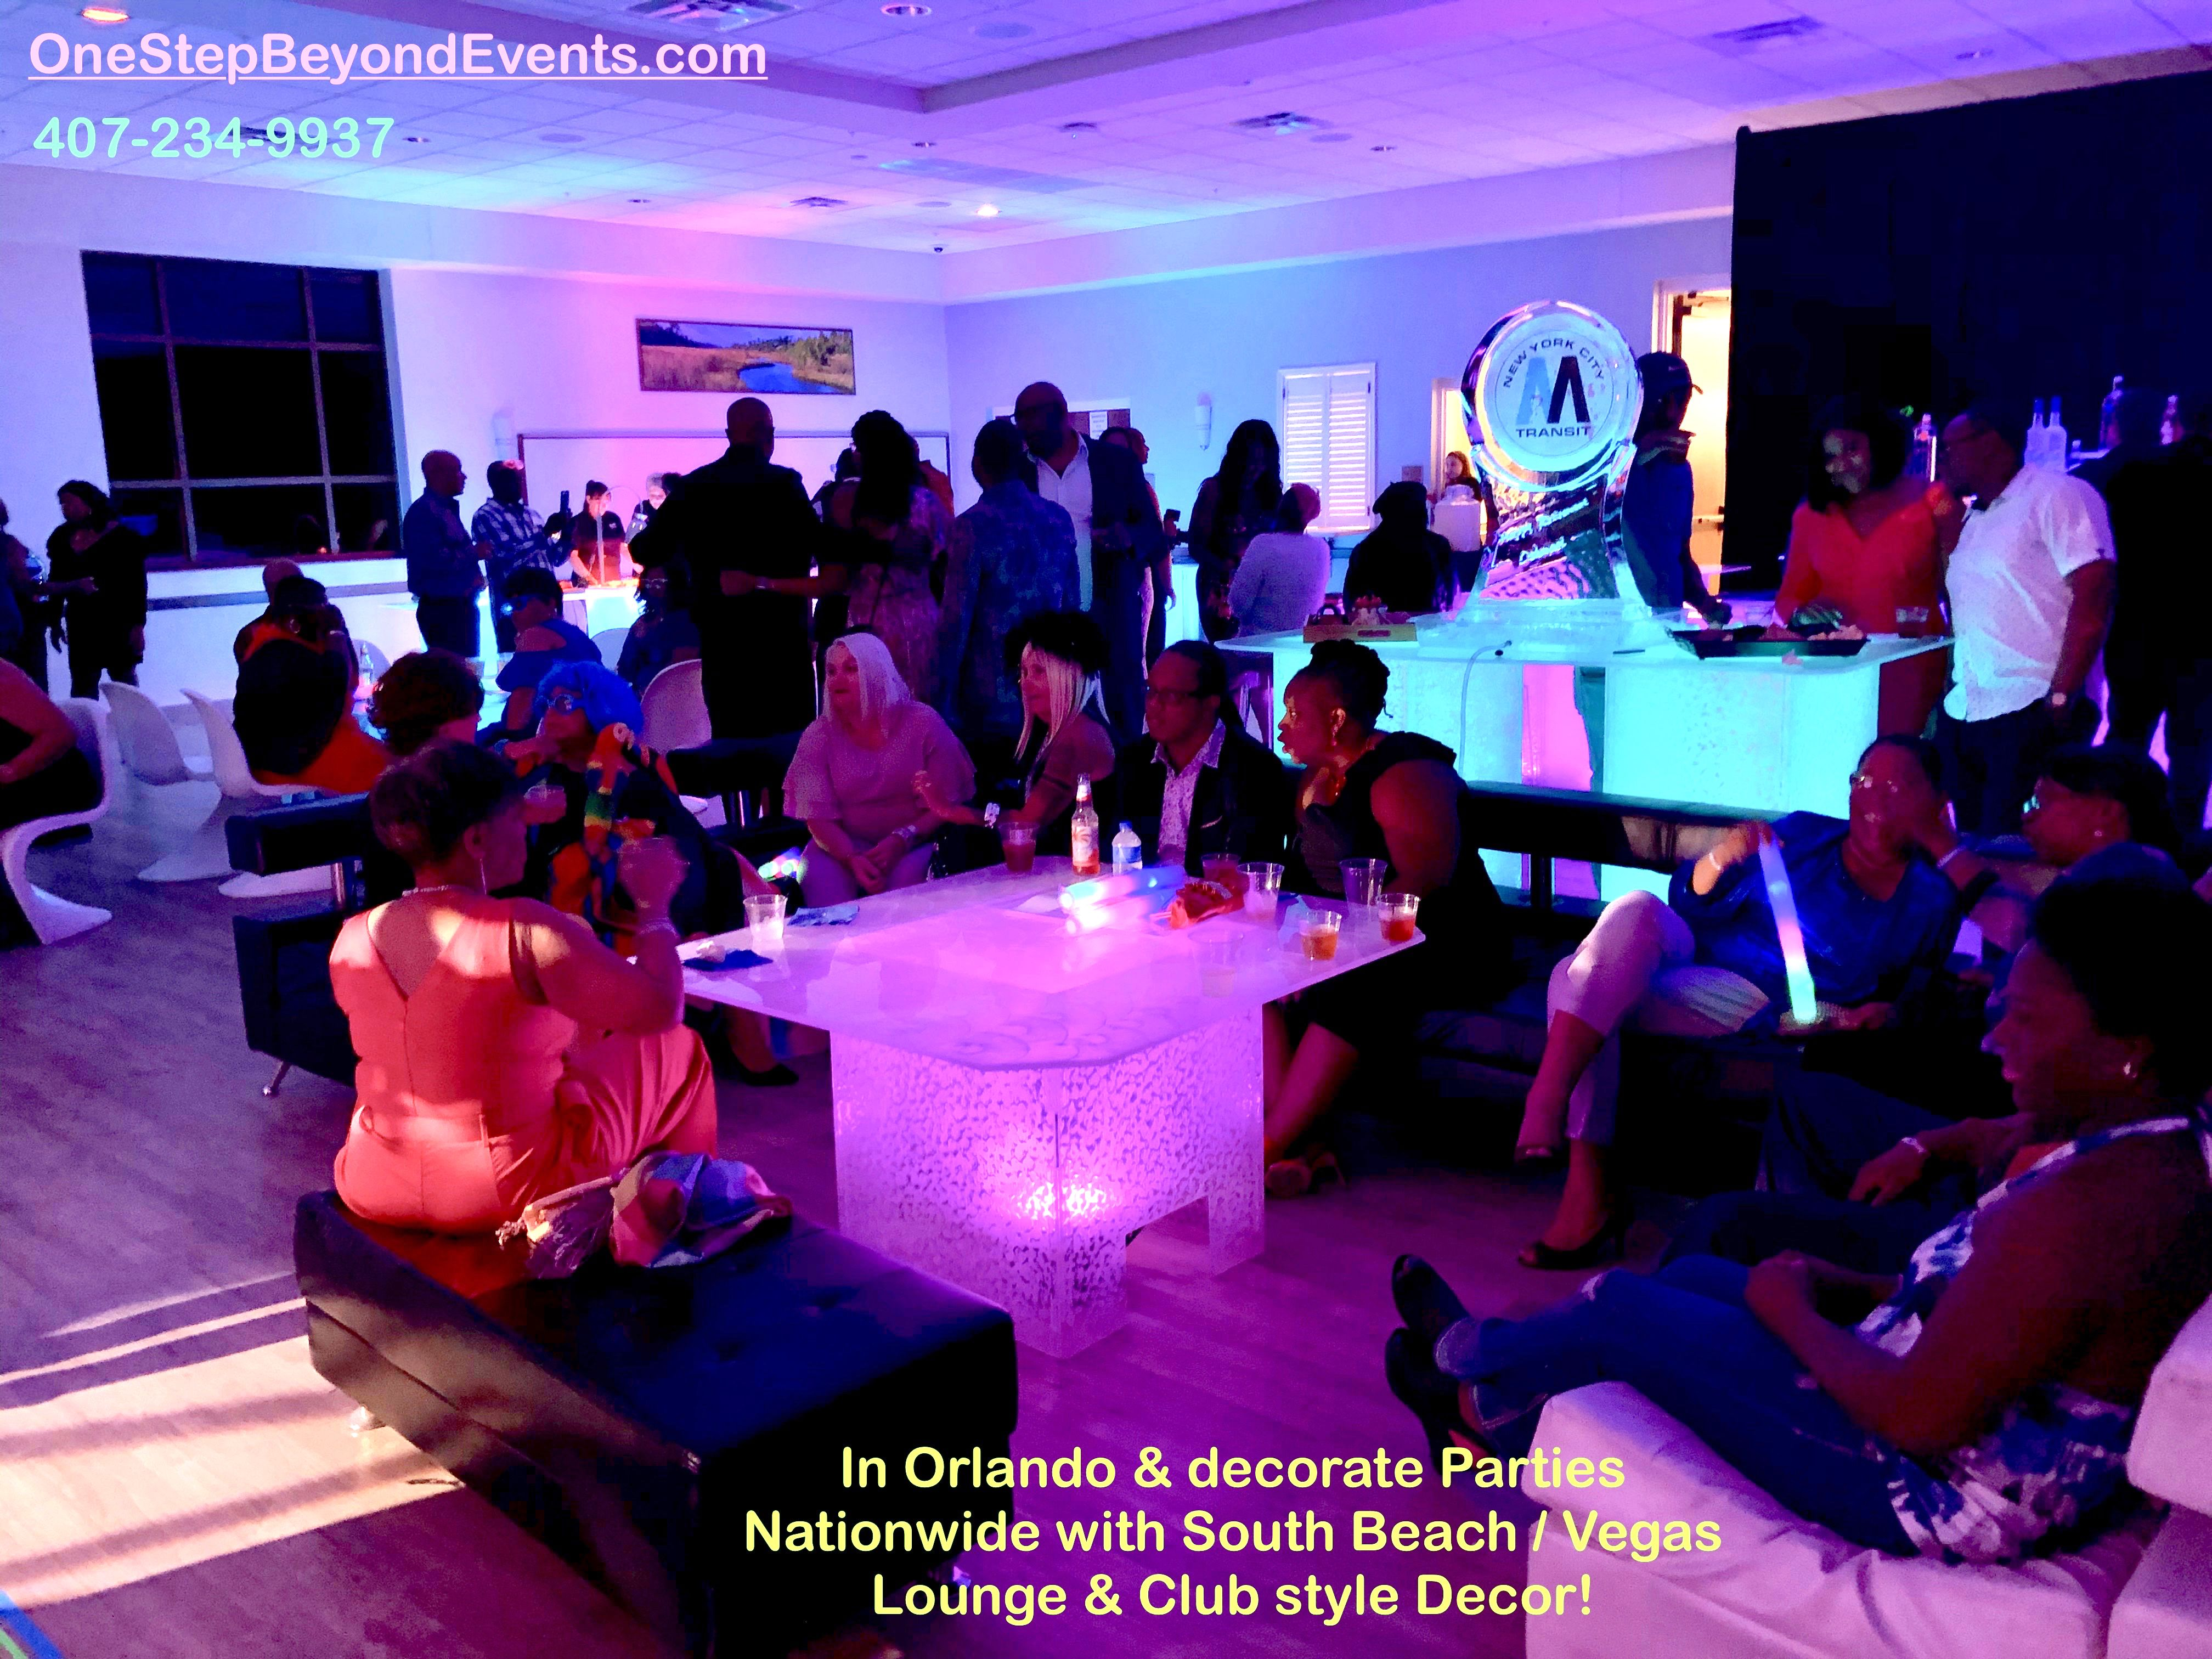 Affordable Party Rentals Glow Table Led Furniture Rentals South Beach Vegas Style Light Up Glow Decor Elegant 4 X4 In 2020 Glow Table Party Rentals Event Rental